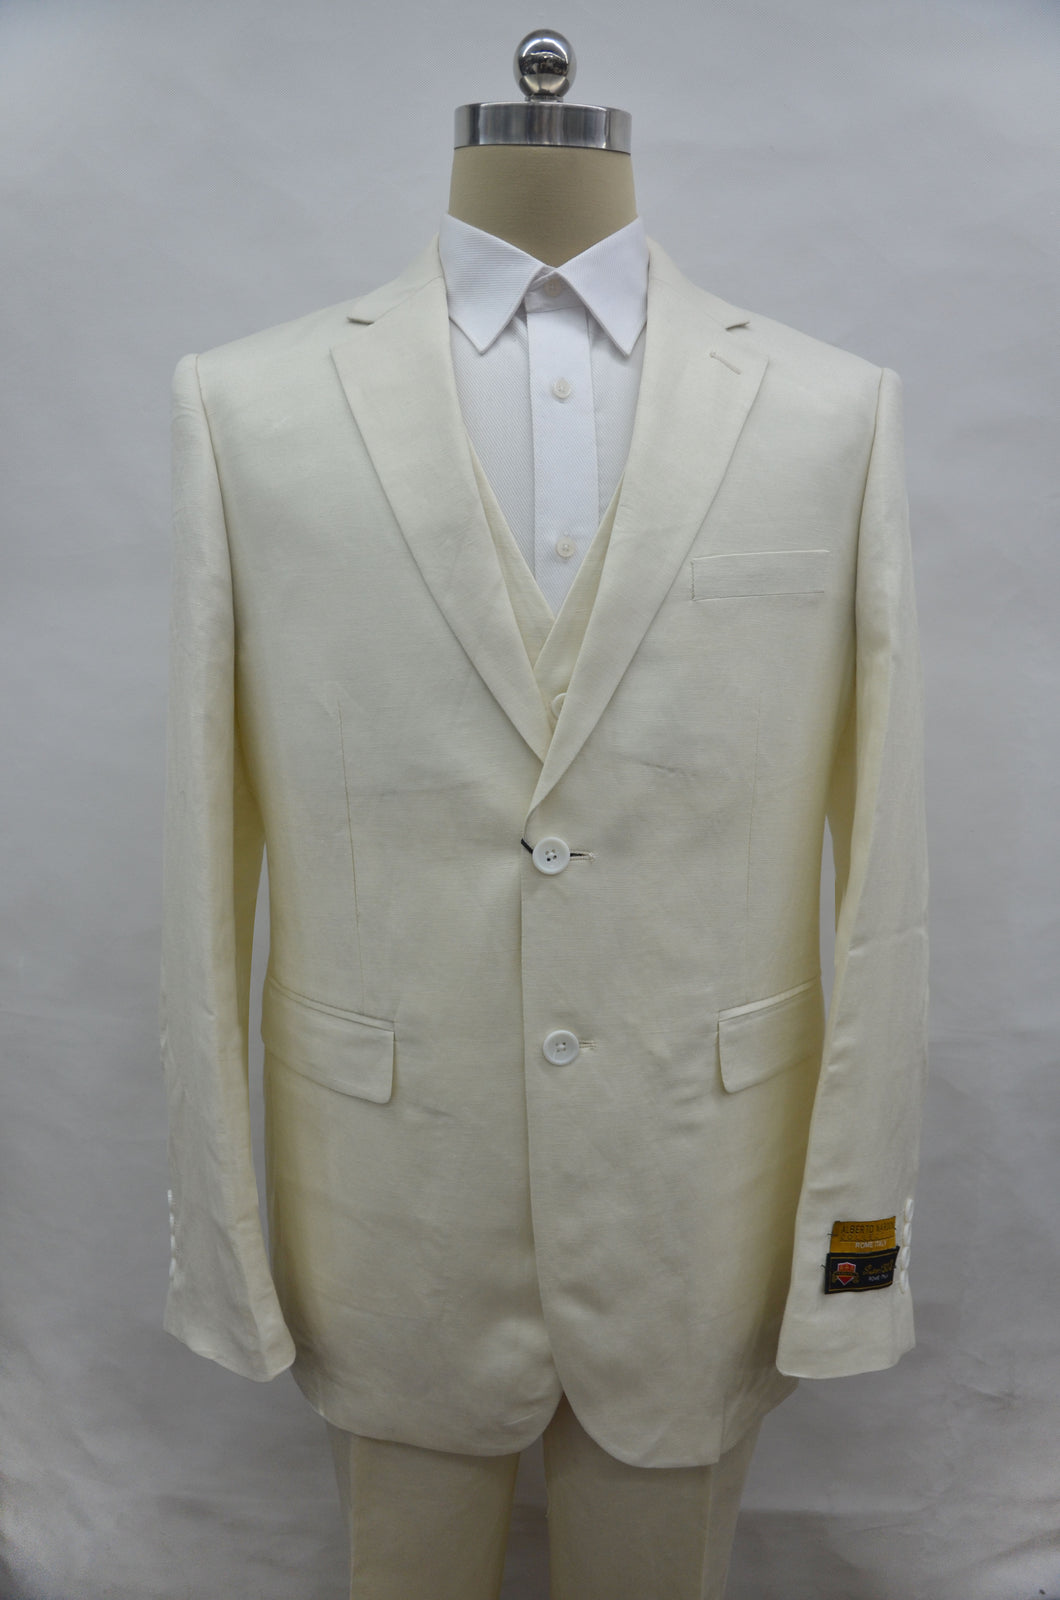 Mens White Linen Suit - White Linen Wedding Suit - Off White